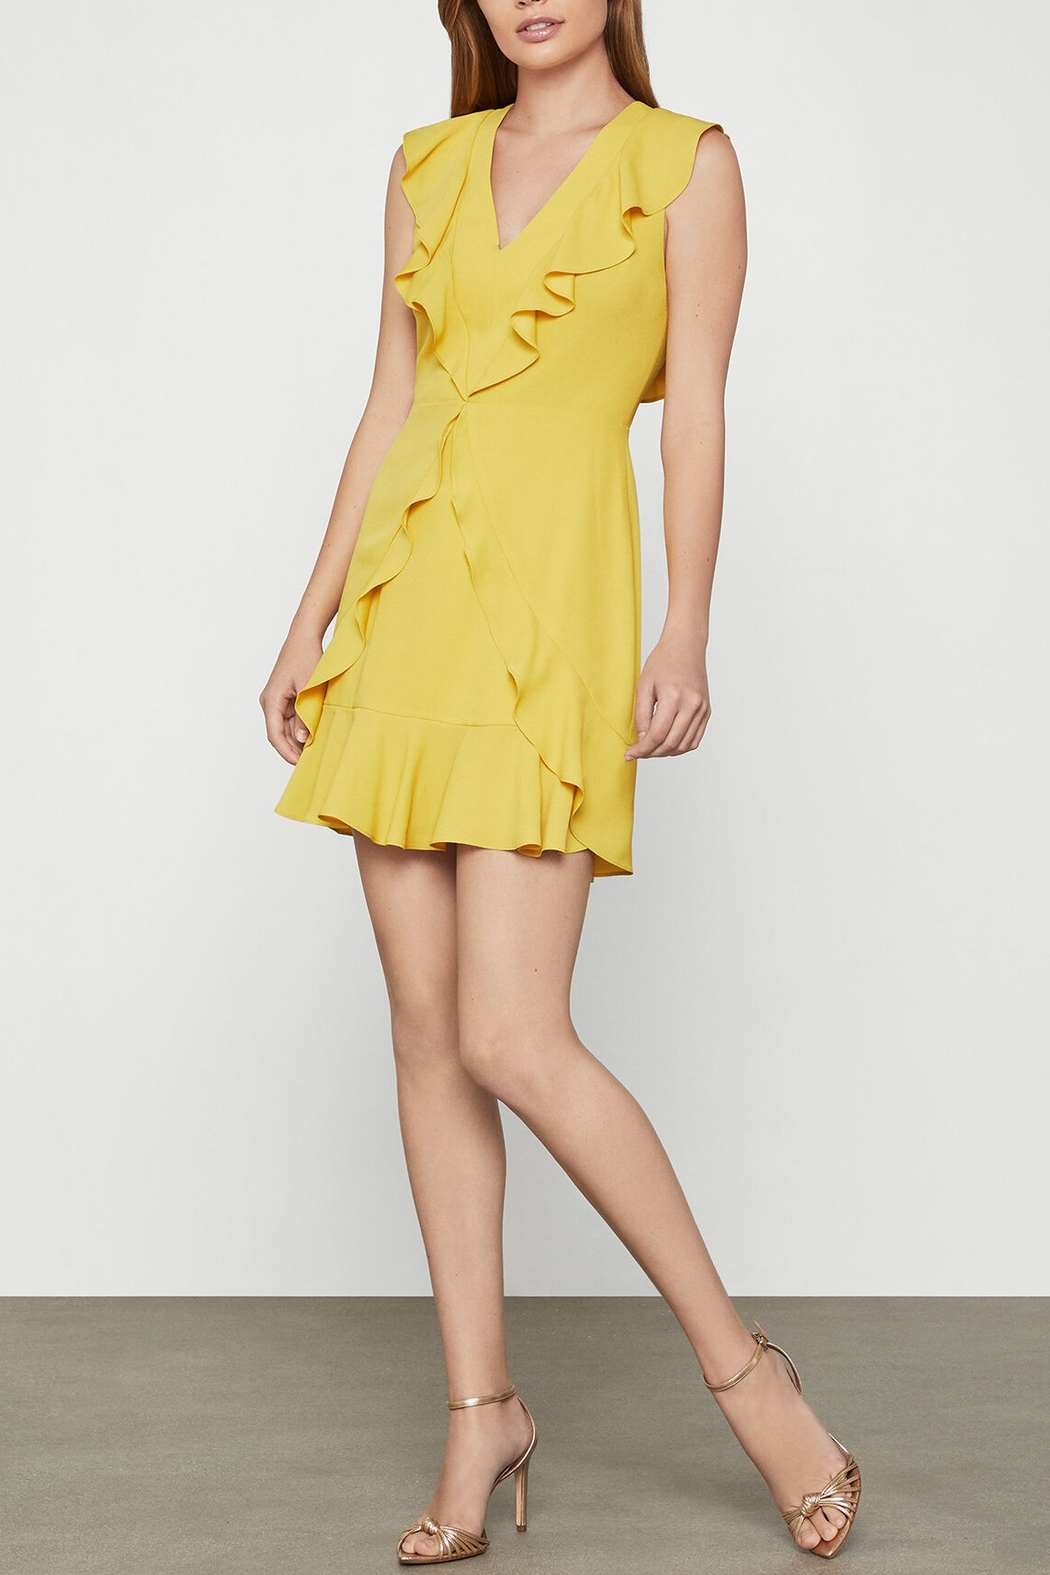 BCBG MAXAZRIA Tyrah Sleeveless Ruffle Dress - Main Image